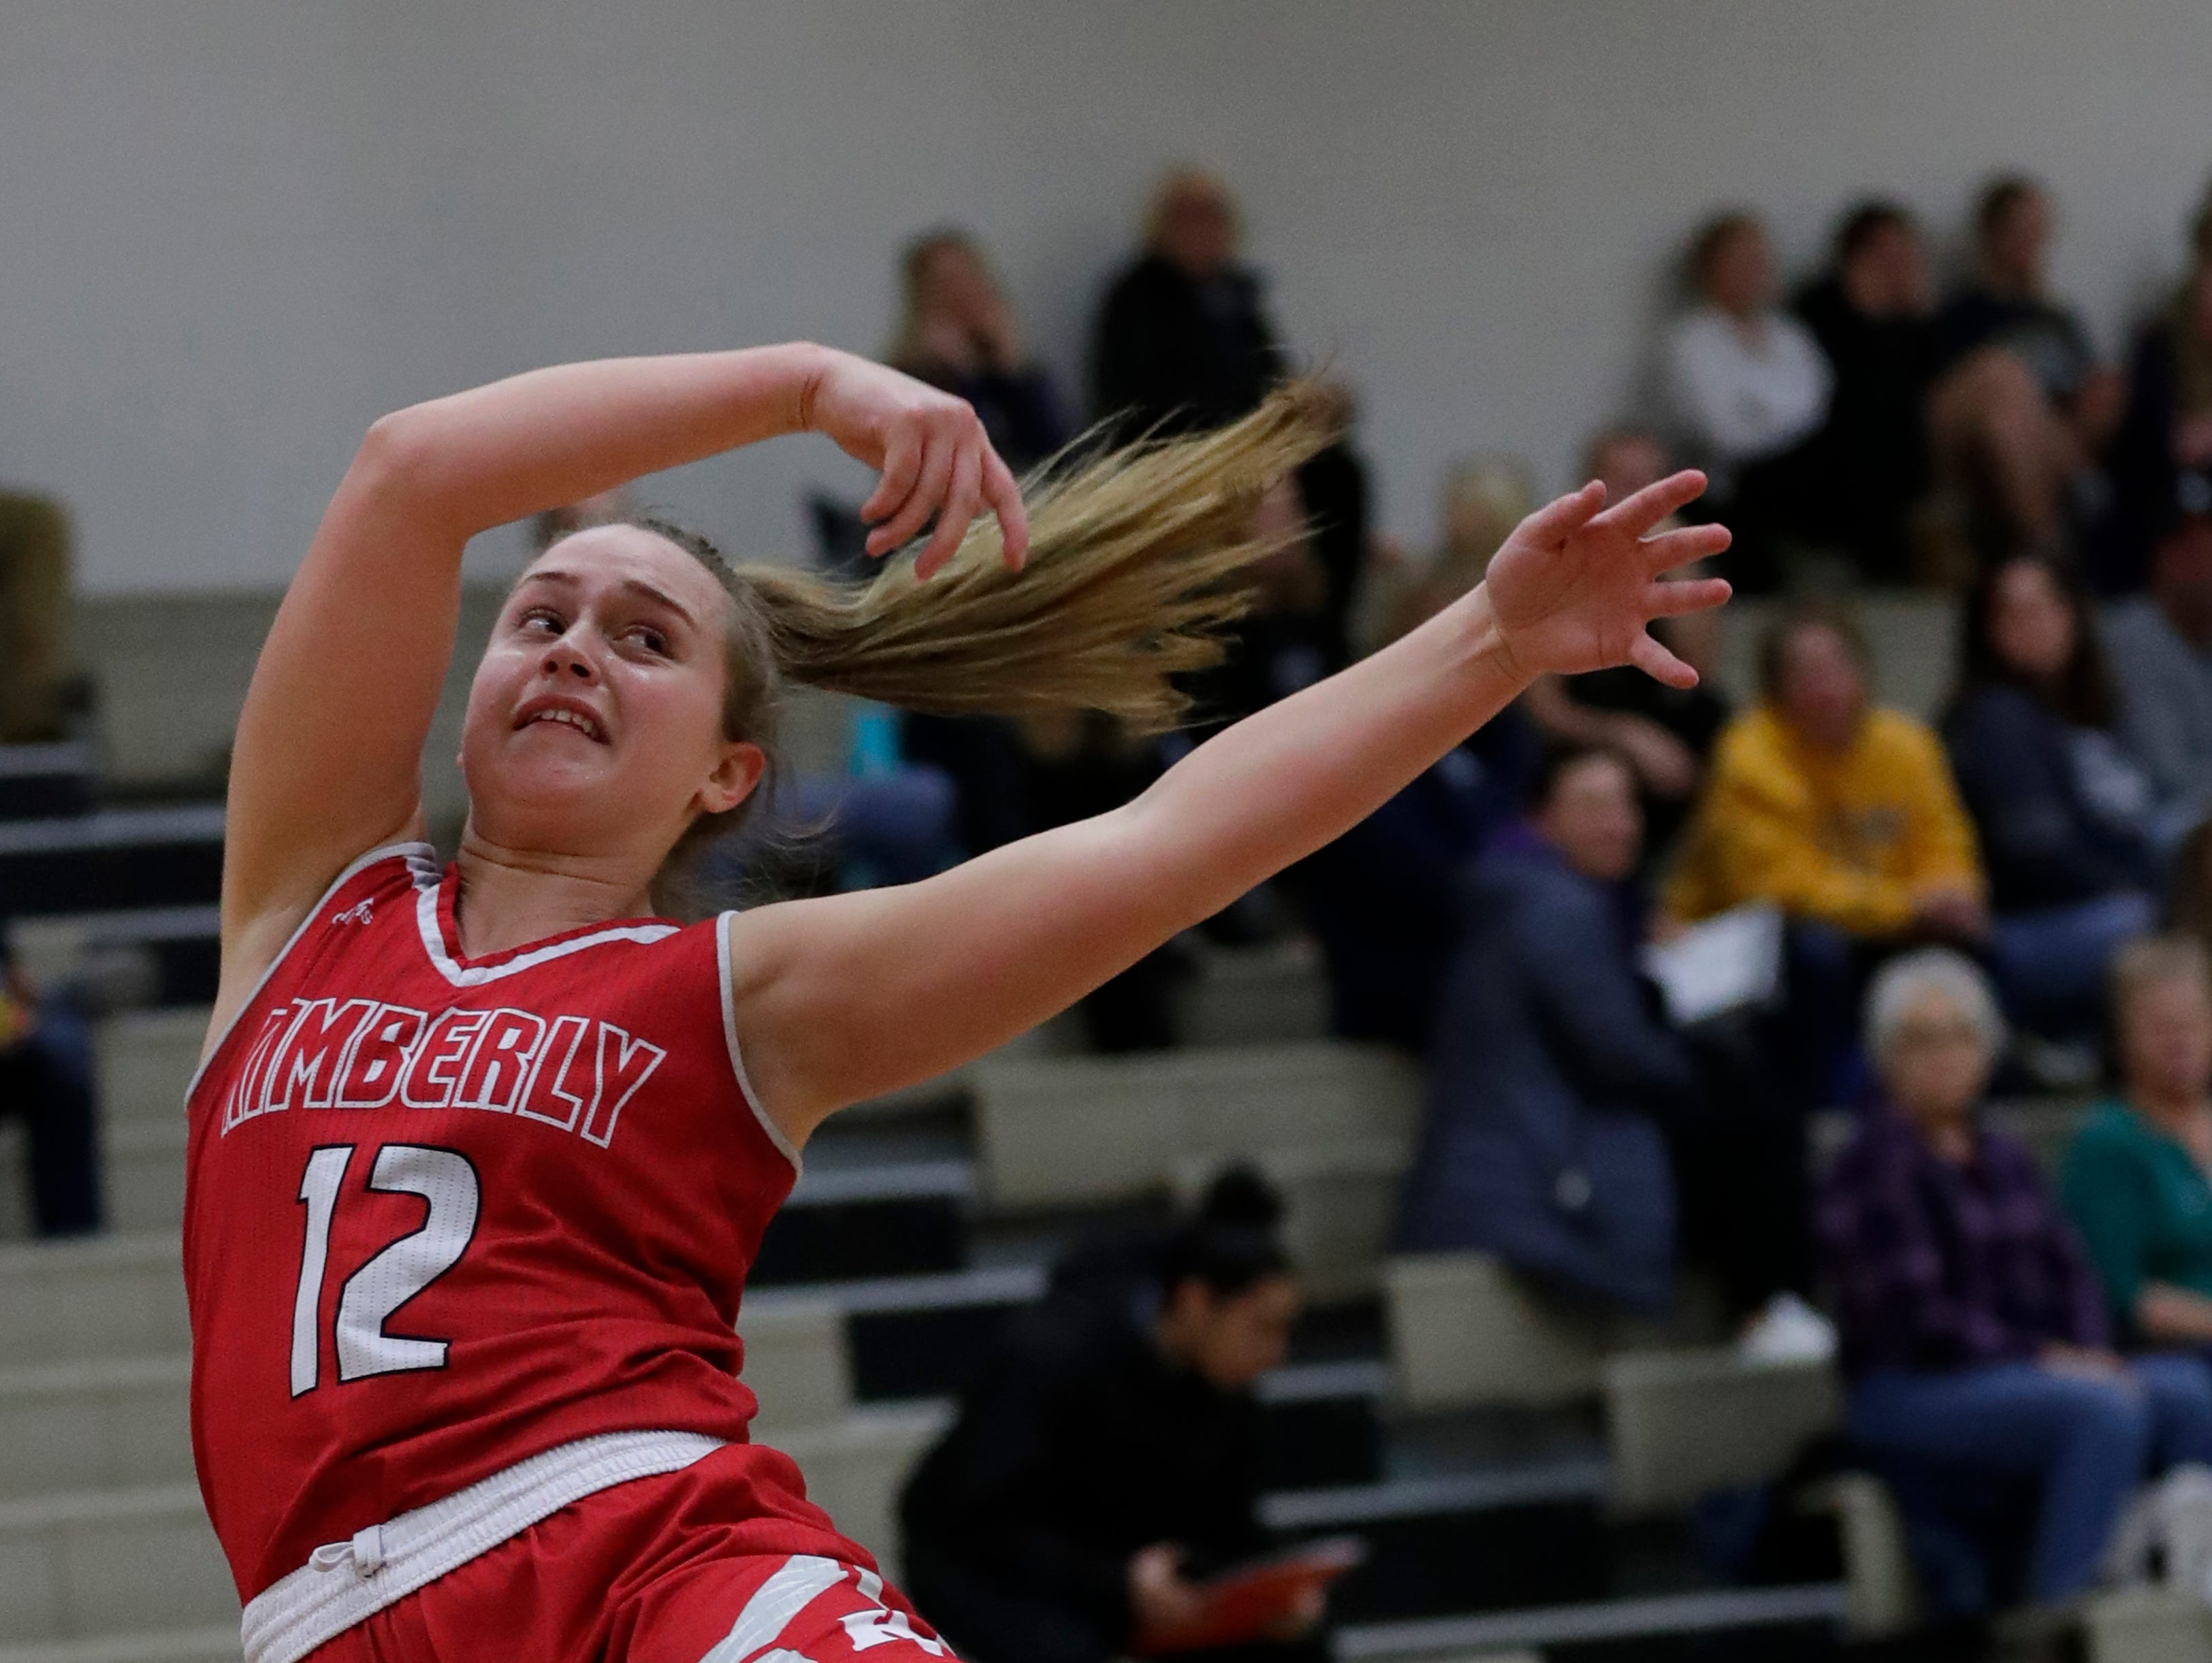 Kimberly High School's Kiara Schmidt (12) tries to keep the ball from going out of bounds against Appleton North High School during their girls basketball game Tuesday, January 8, 2019, in Appleton, Wis. Dan Powers/USA TODAY NETWORK-Wisconsin